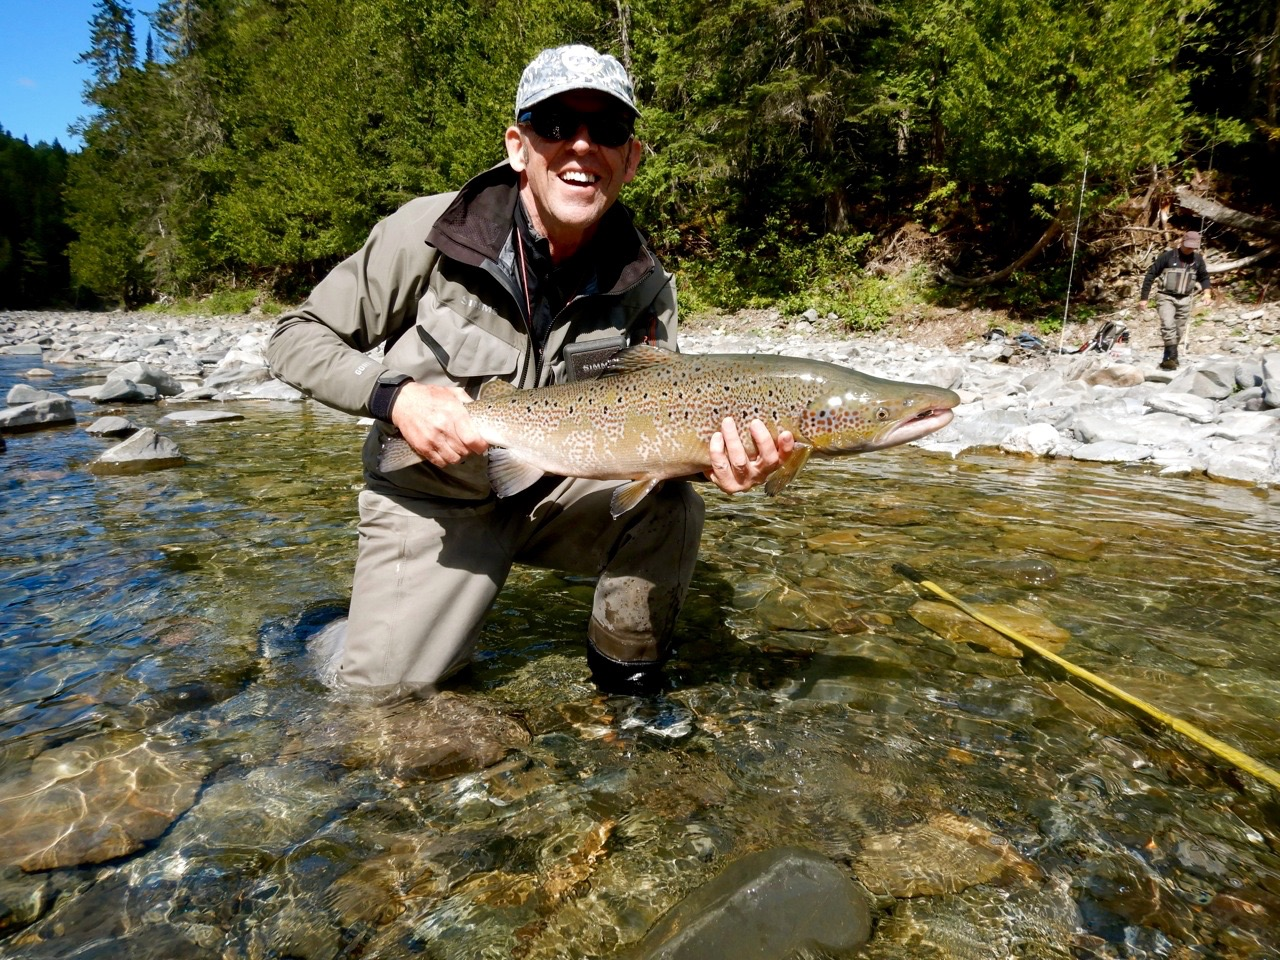 Dominique Larde with his first Atlantic salmon from Canadian waters , congratulations Dominique!